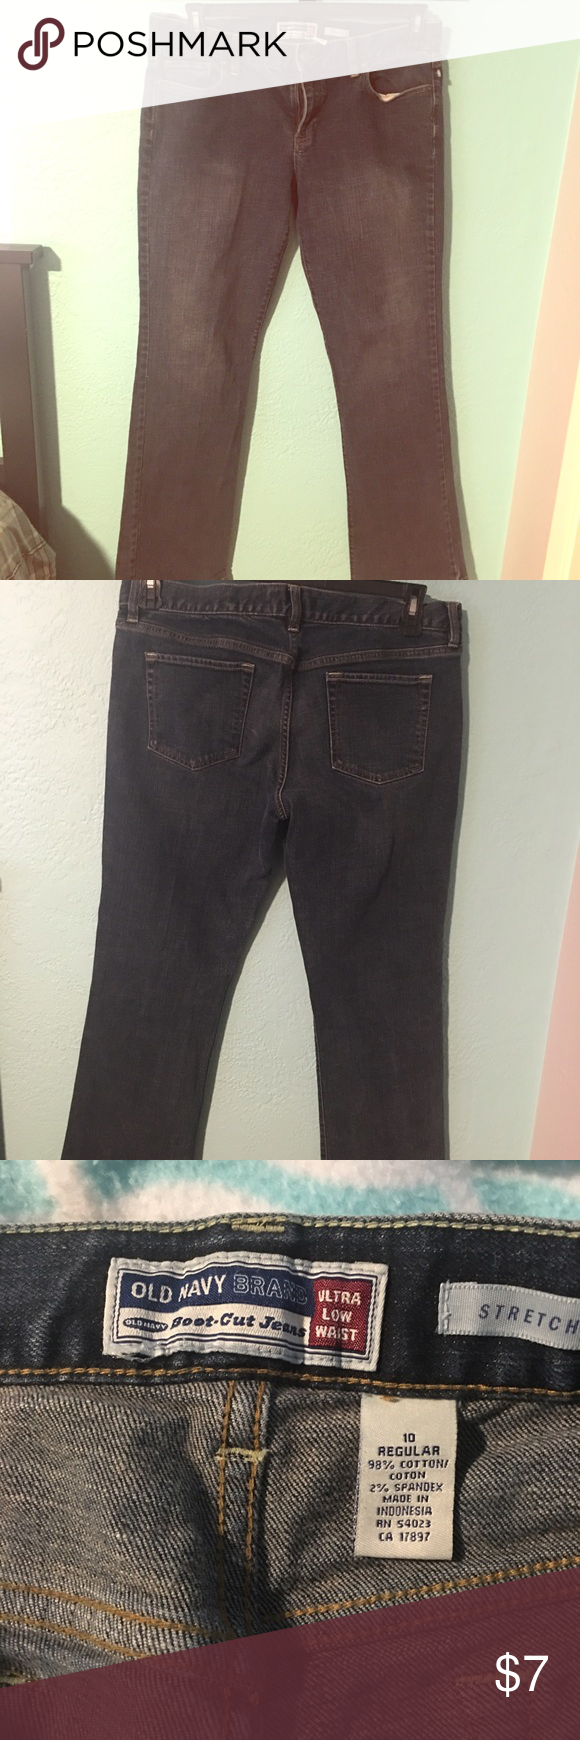 Old Navy Jeans ~I didn't like how they fit but they are super cute and simple pants. They do have some stretch making them comfortable for all day wear. ~size 10 Old Navy Jeans Boot Cut